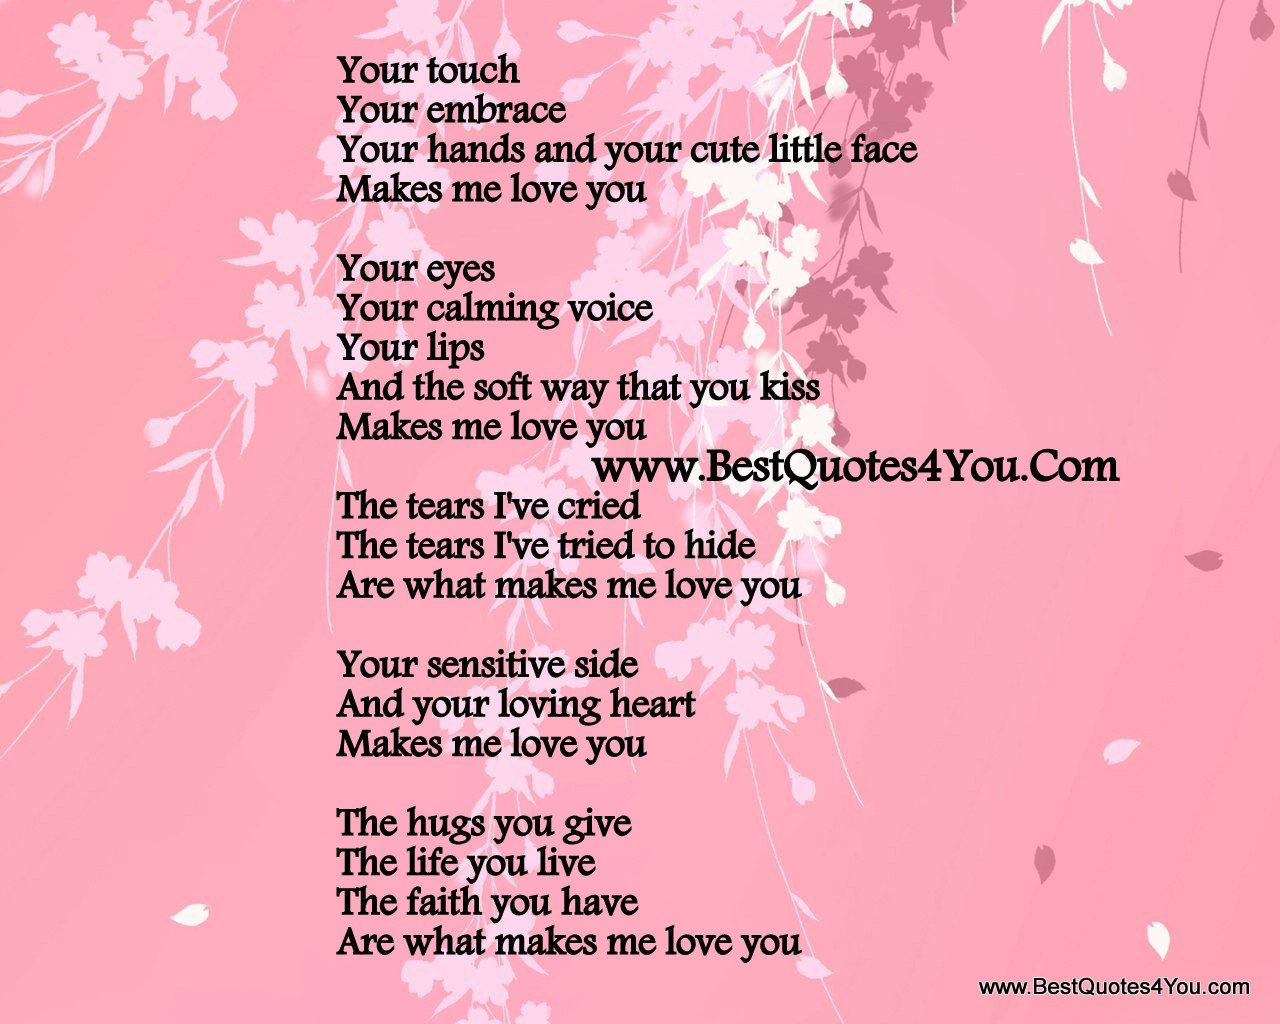 New Relationship Love Quotes: New Relationship Quotes For Her. QuotesGram